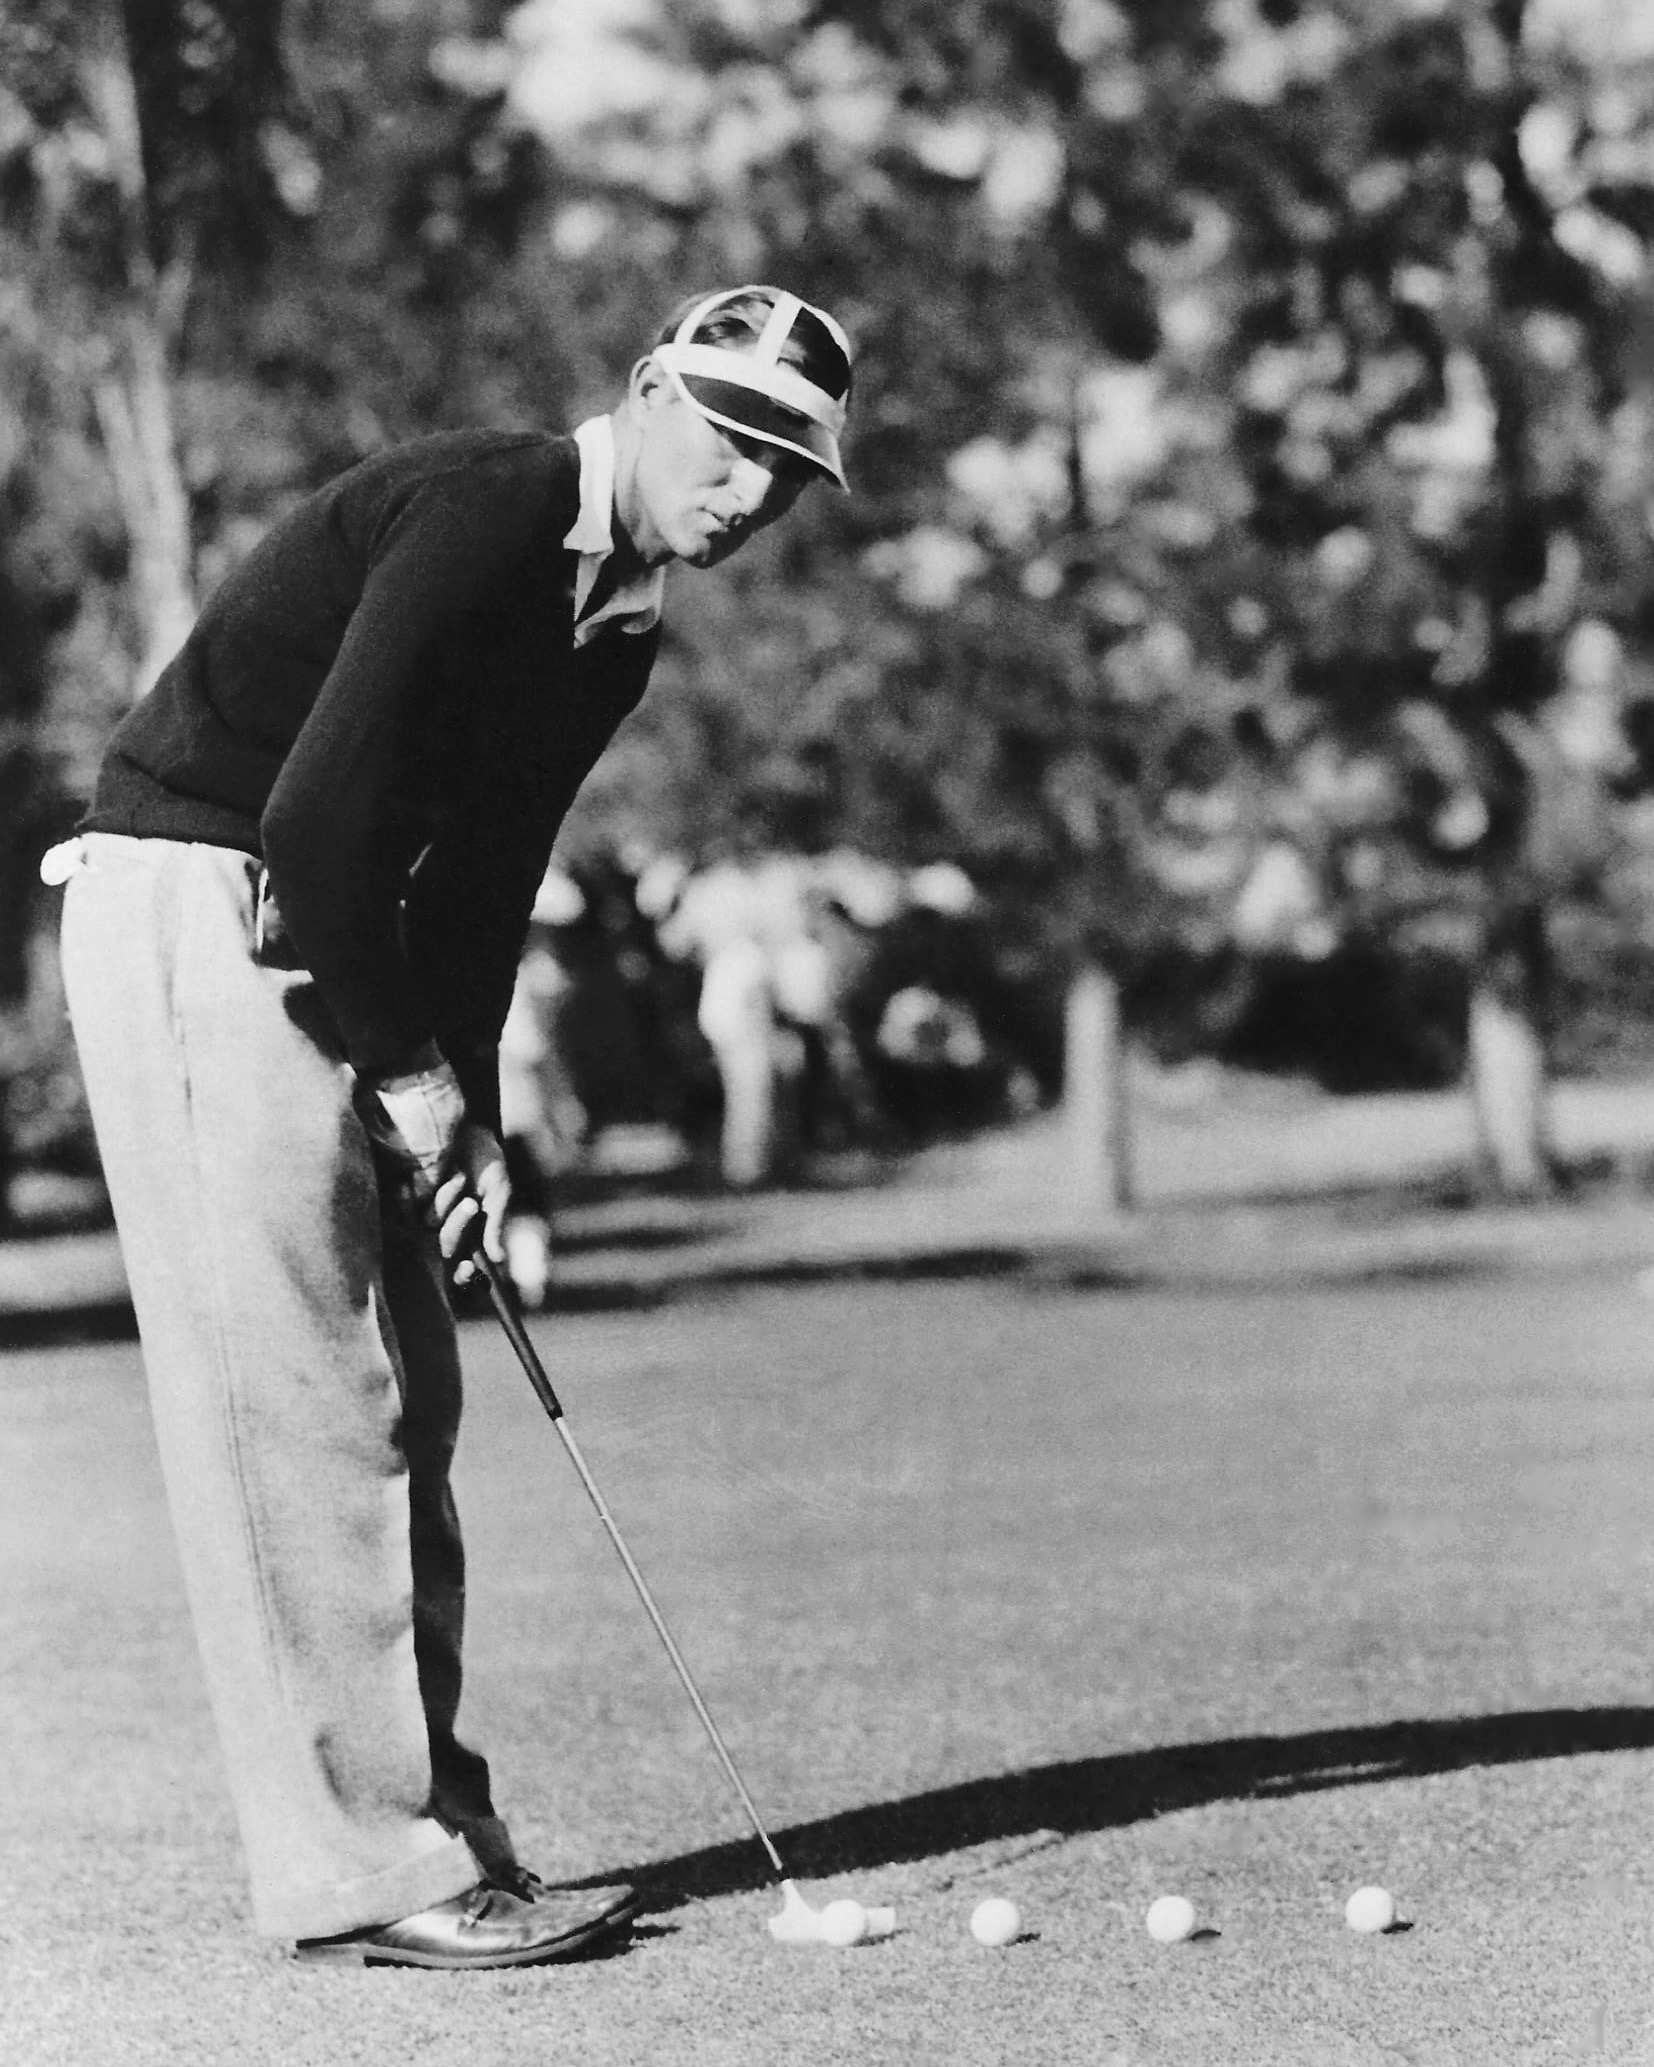 """SHARPENS BATTING EYE AT SARASOTA OPEN.  Paul Waner,  of the ""Poison Twins"" that being to the Pittsburgh Pirates, sharpens his eye before winter training begins for his club this season with a little putting. Waner is competing in the new Sarasota, Fla., $2,000 Open golf tournament."" ACME"